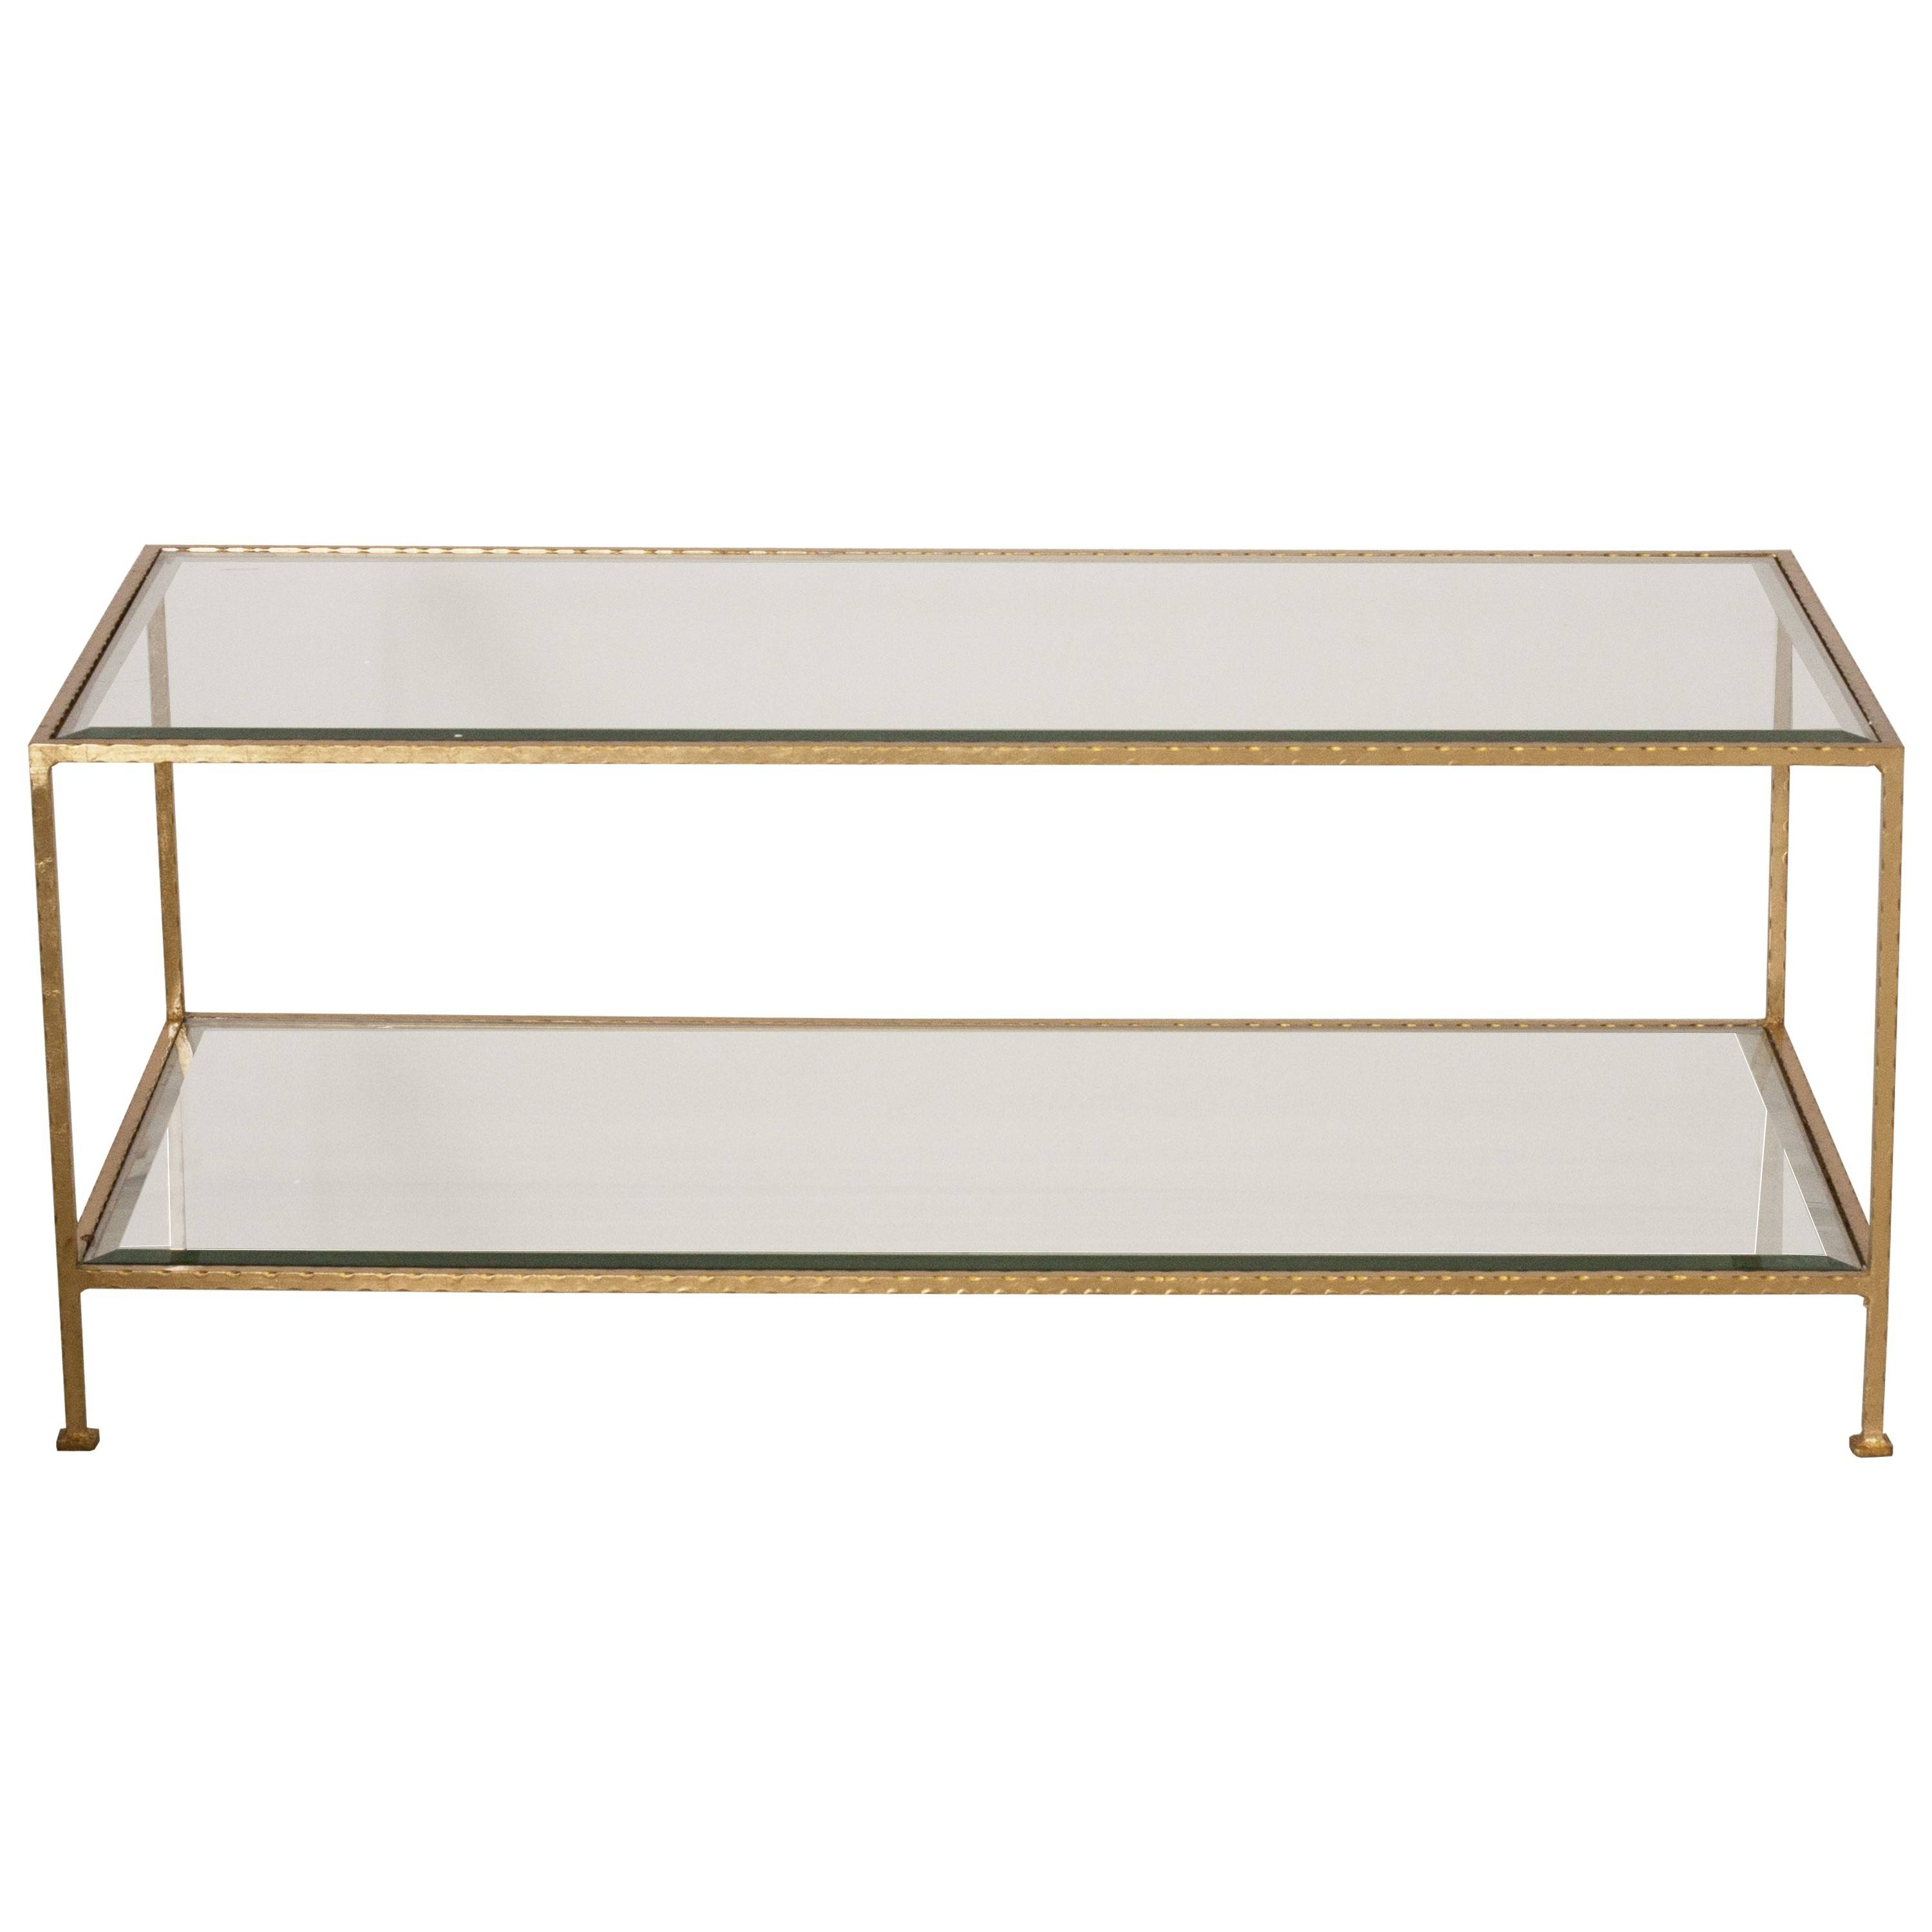 Coffee Table: Stunning Rectangular Glass Coffee Table Designs Regarding Small Coffee Tables With Shelf (View 13 of 30)